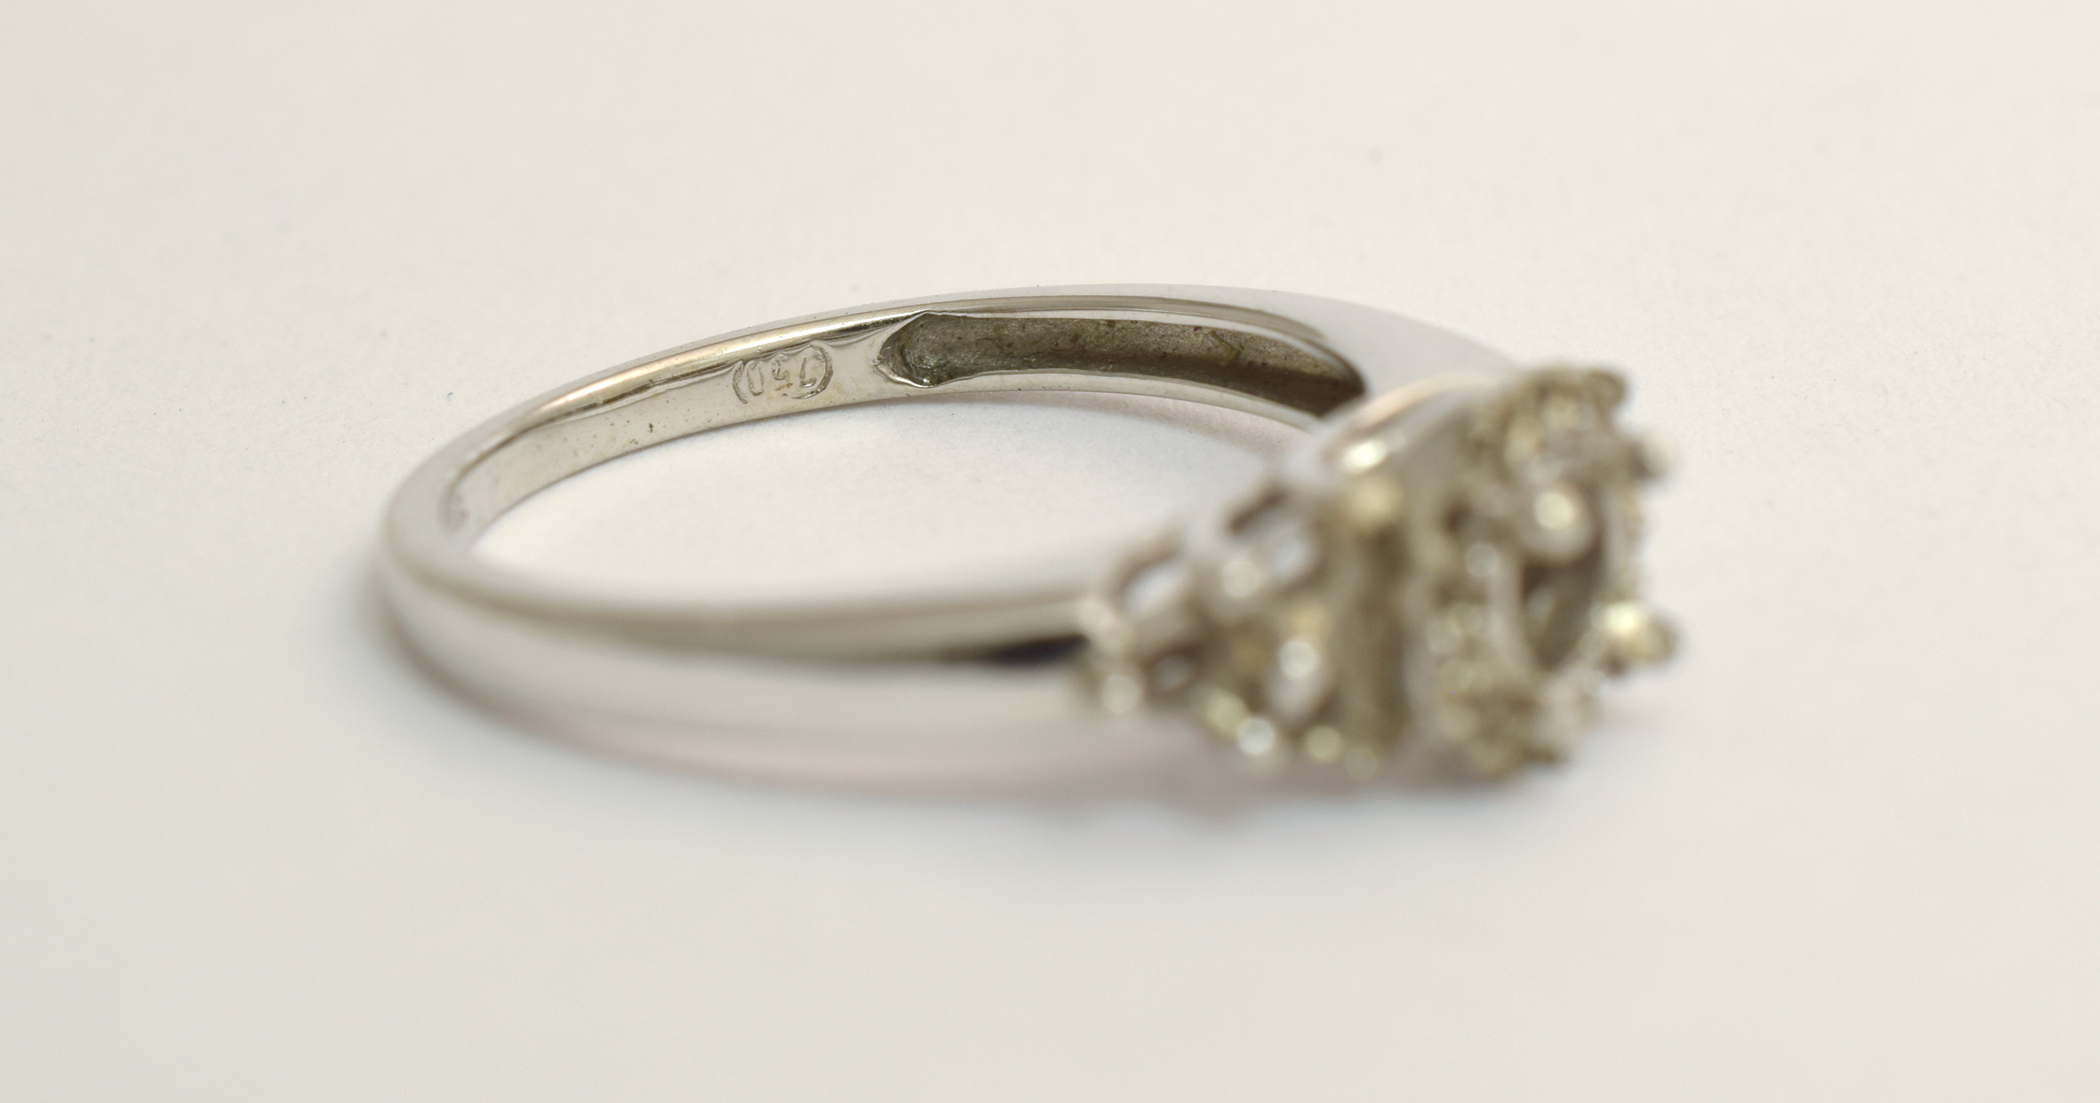 A jewellery chain destroyed this ring when they resized it beyond it limits to close a sale. I had to totally remake it.